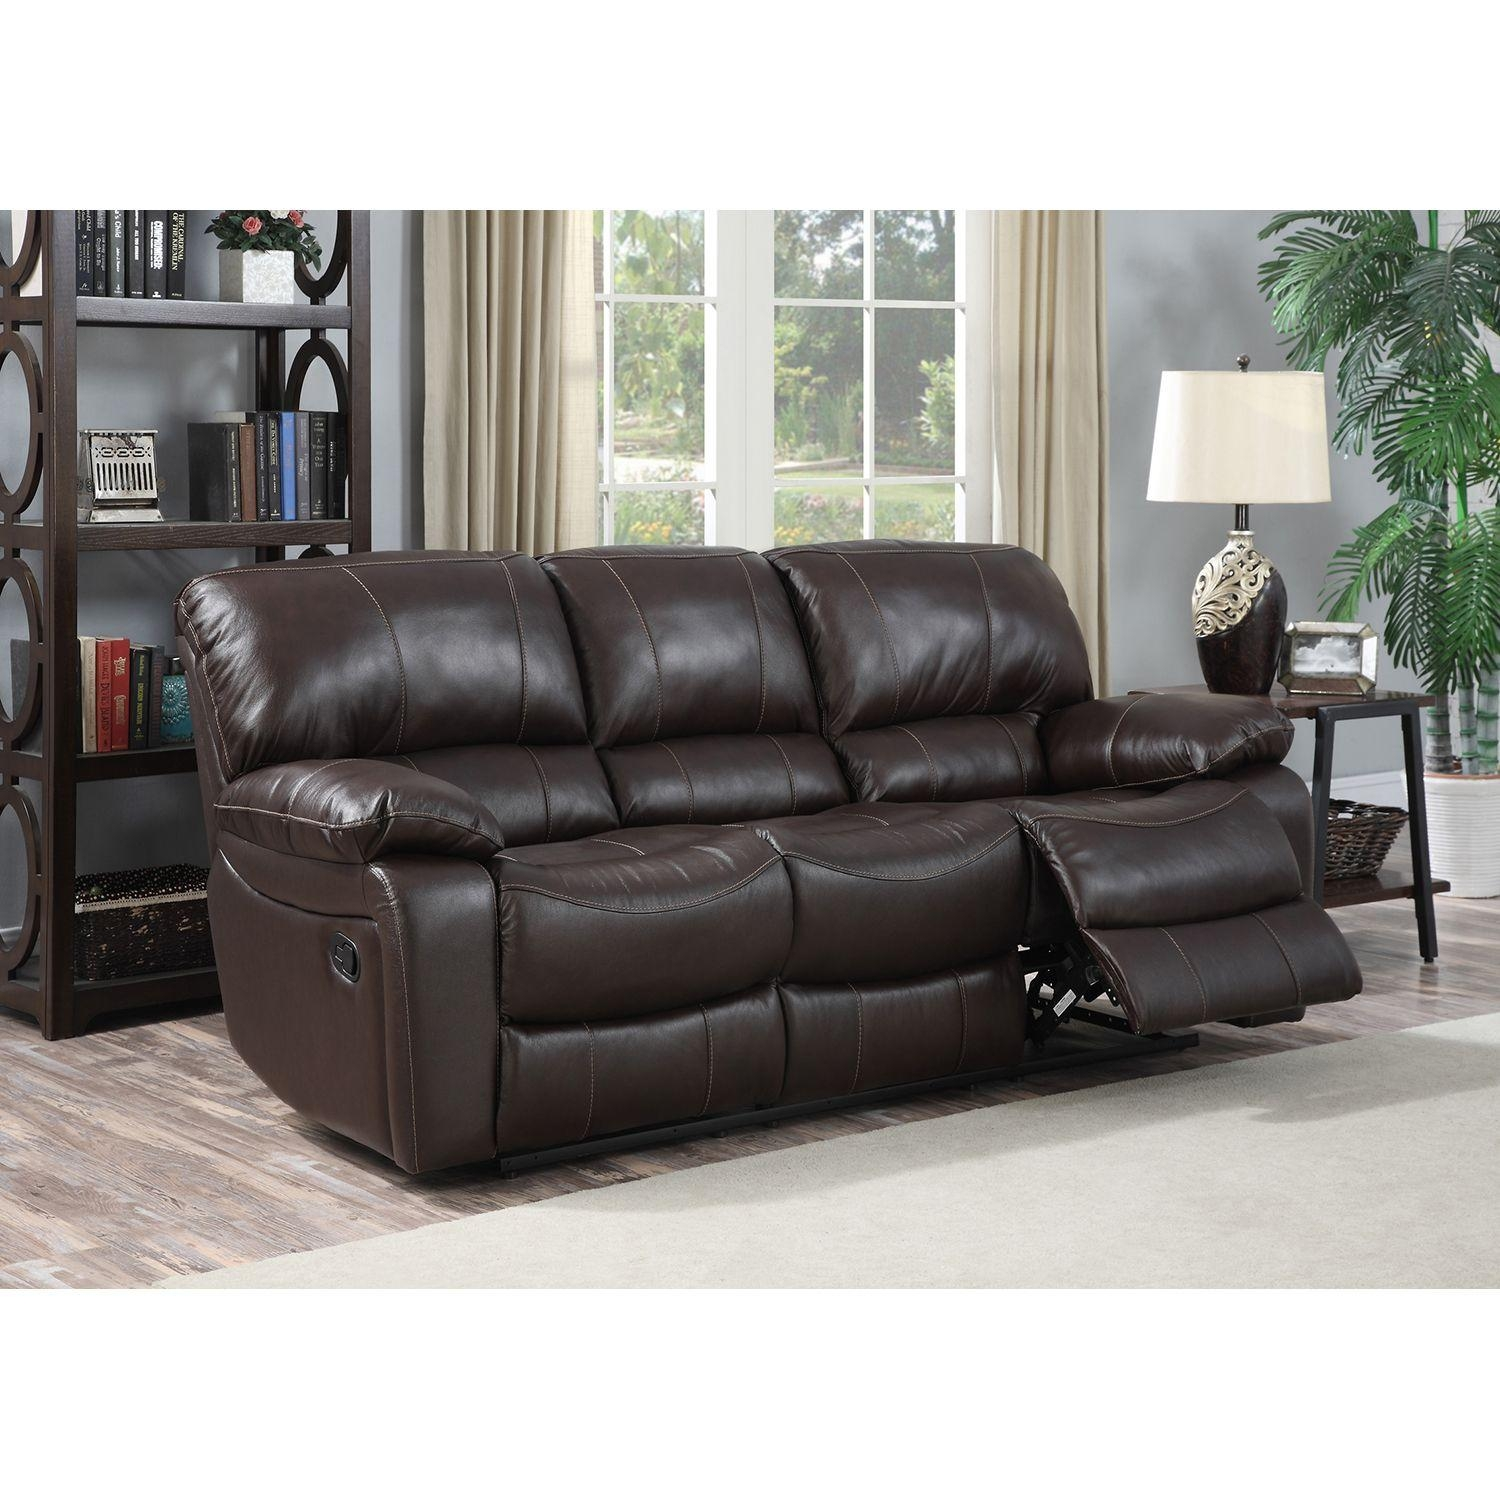 Leather Power Reclining Sofa At Costco: 2018 Latest Berkline Recliner Sofas